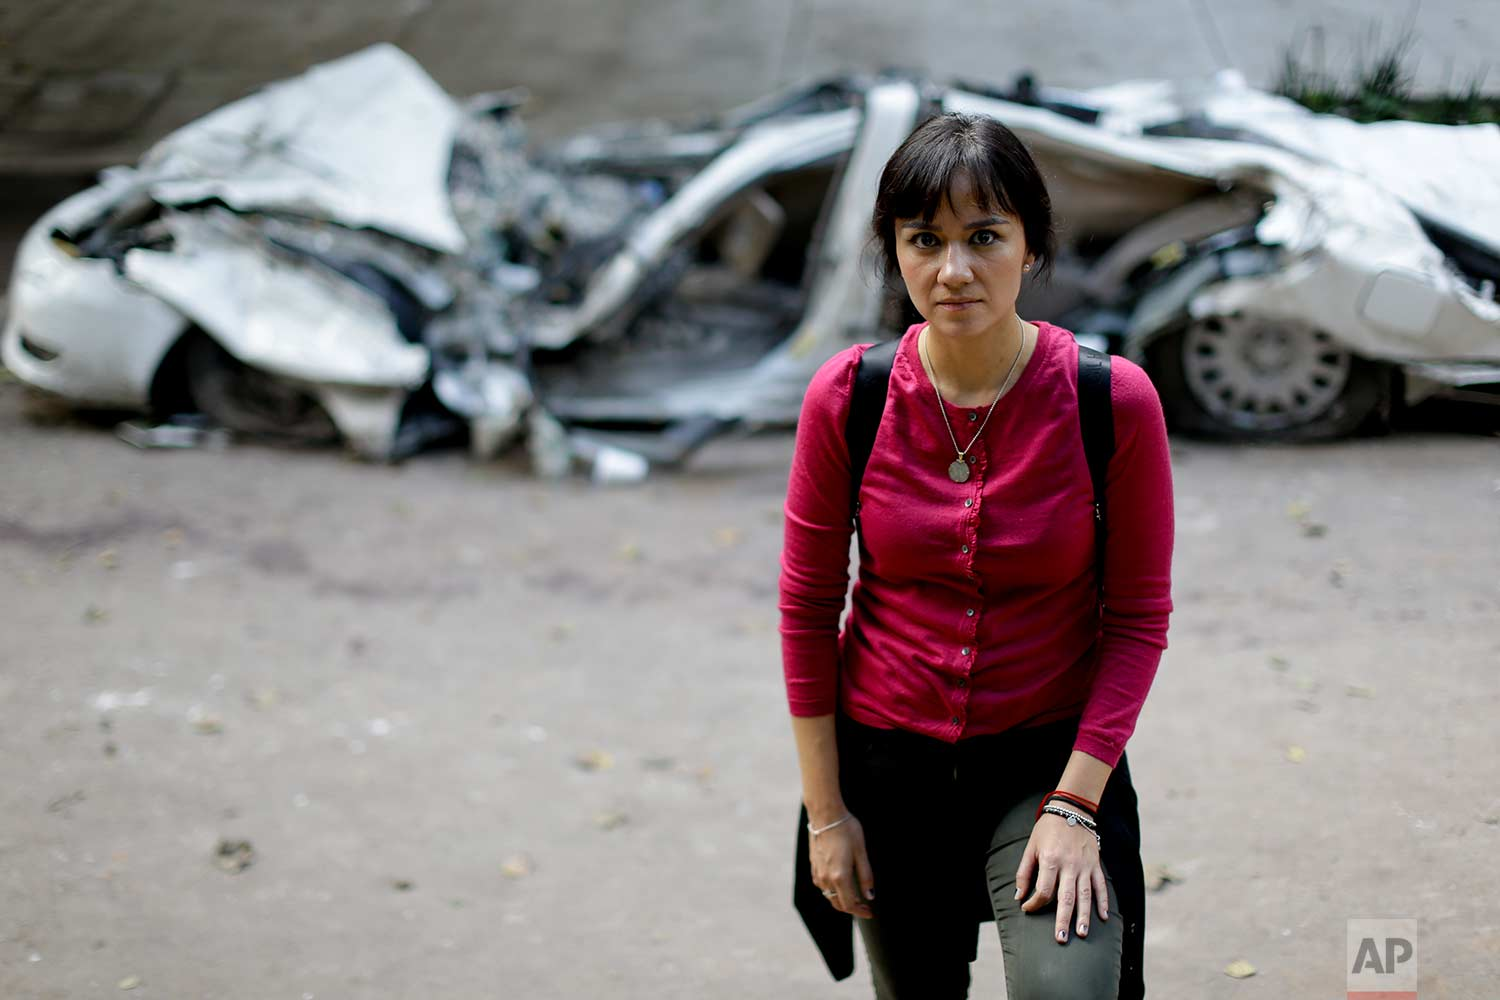 """Mariana Mancera, a 35-year-old makeup artist, poses for a portrait in front of an earthquake-crushed car, In this Friday, Sept. 22, 2017 photo, in Mexico City. Mancera, whose family owns a restaurant, said she volunteered to provide food to those searching for survivors in the rubble after the 7.1 earthquake on Sept. 19. """"If I cannot work removing stones and debris, then I'll do something else to give them energy so they can do their jobs."""" (AP Photo/Natacha Pisarenko)"""